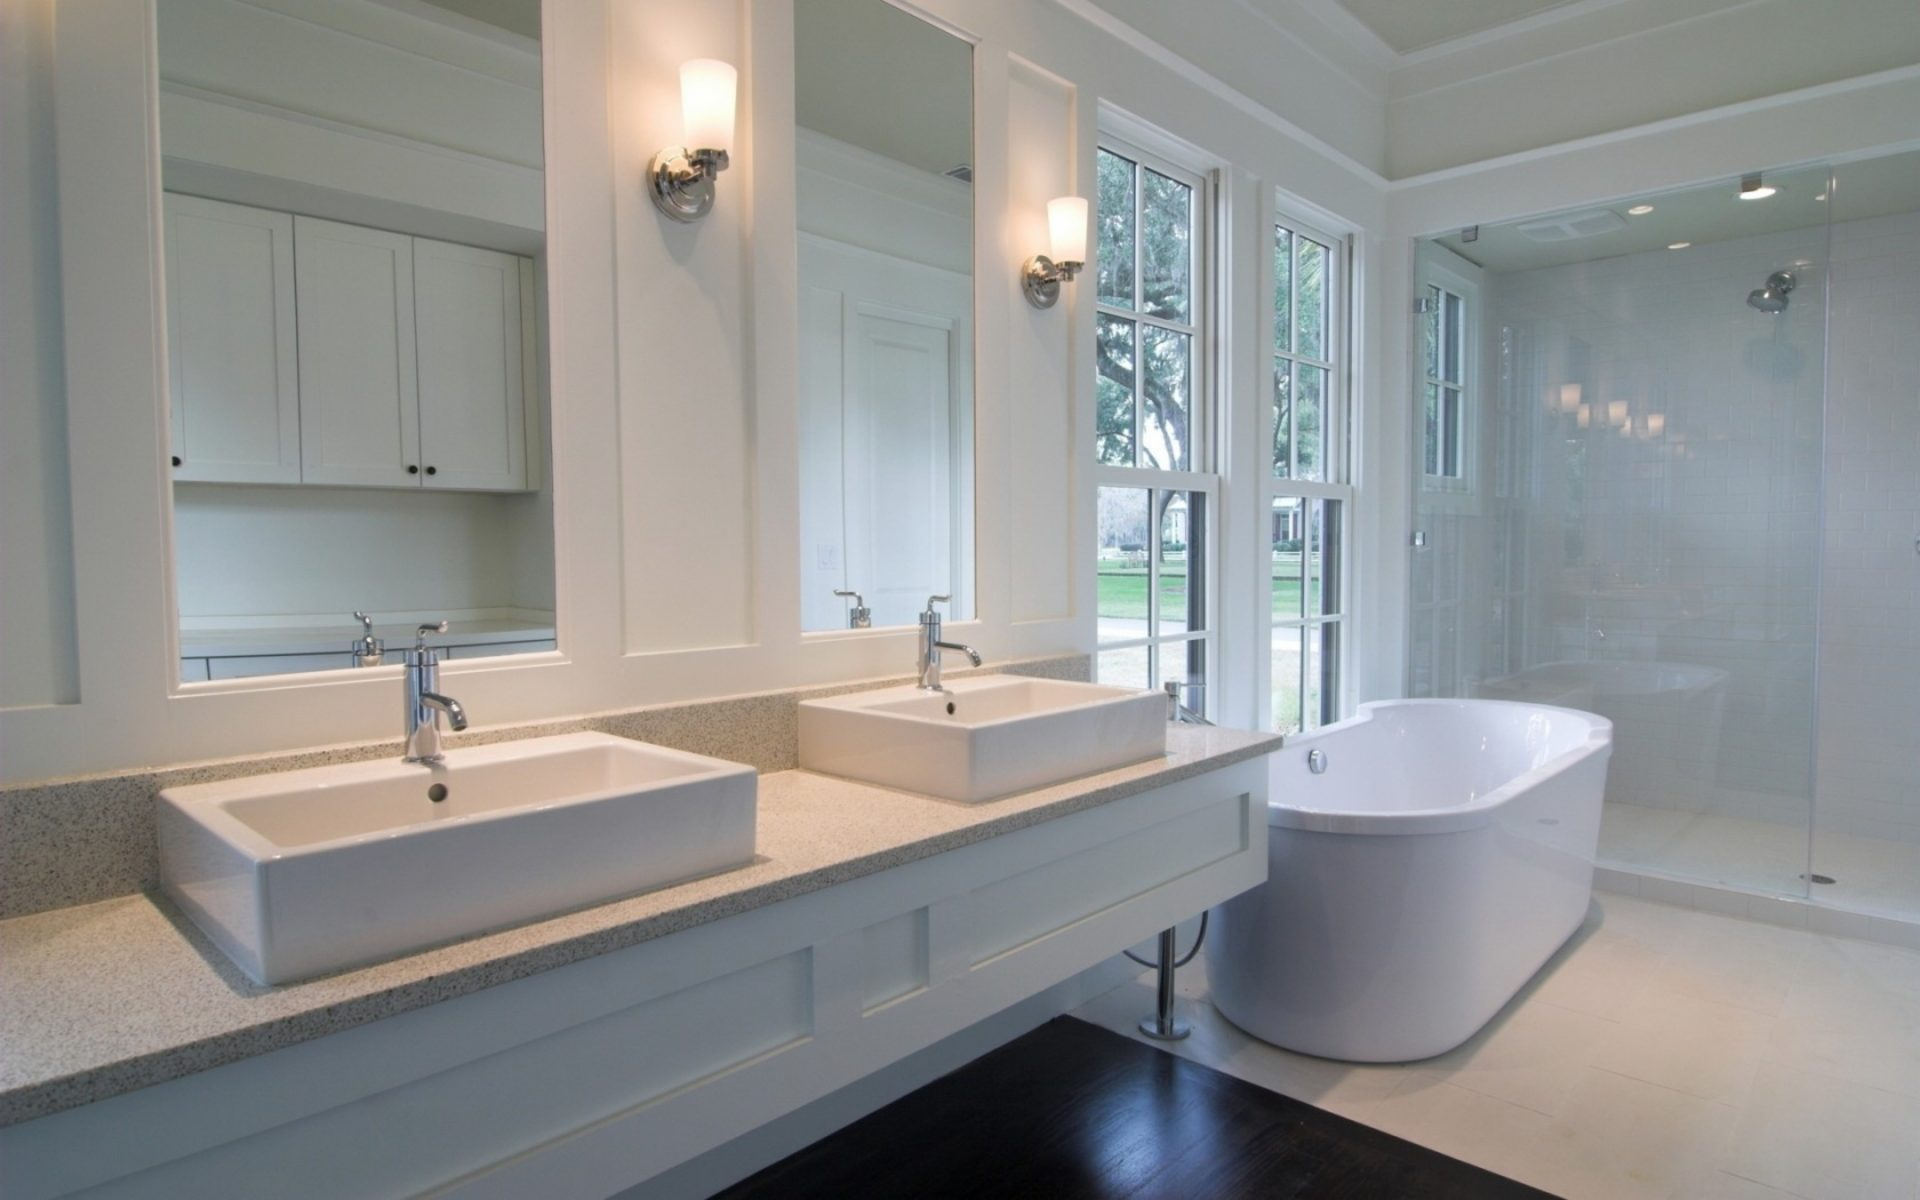 Etonnant San Antonio Bathroom Remodeling Trends Bathroom Cabinets Countertops Tile  Flooring Renovation Contractors